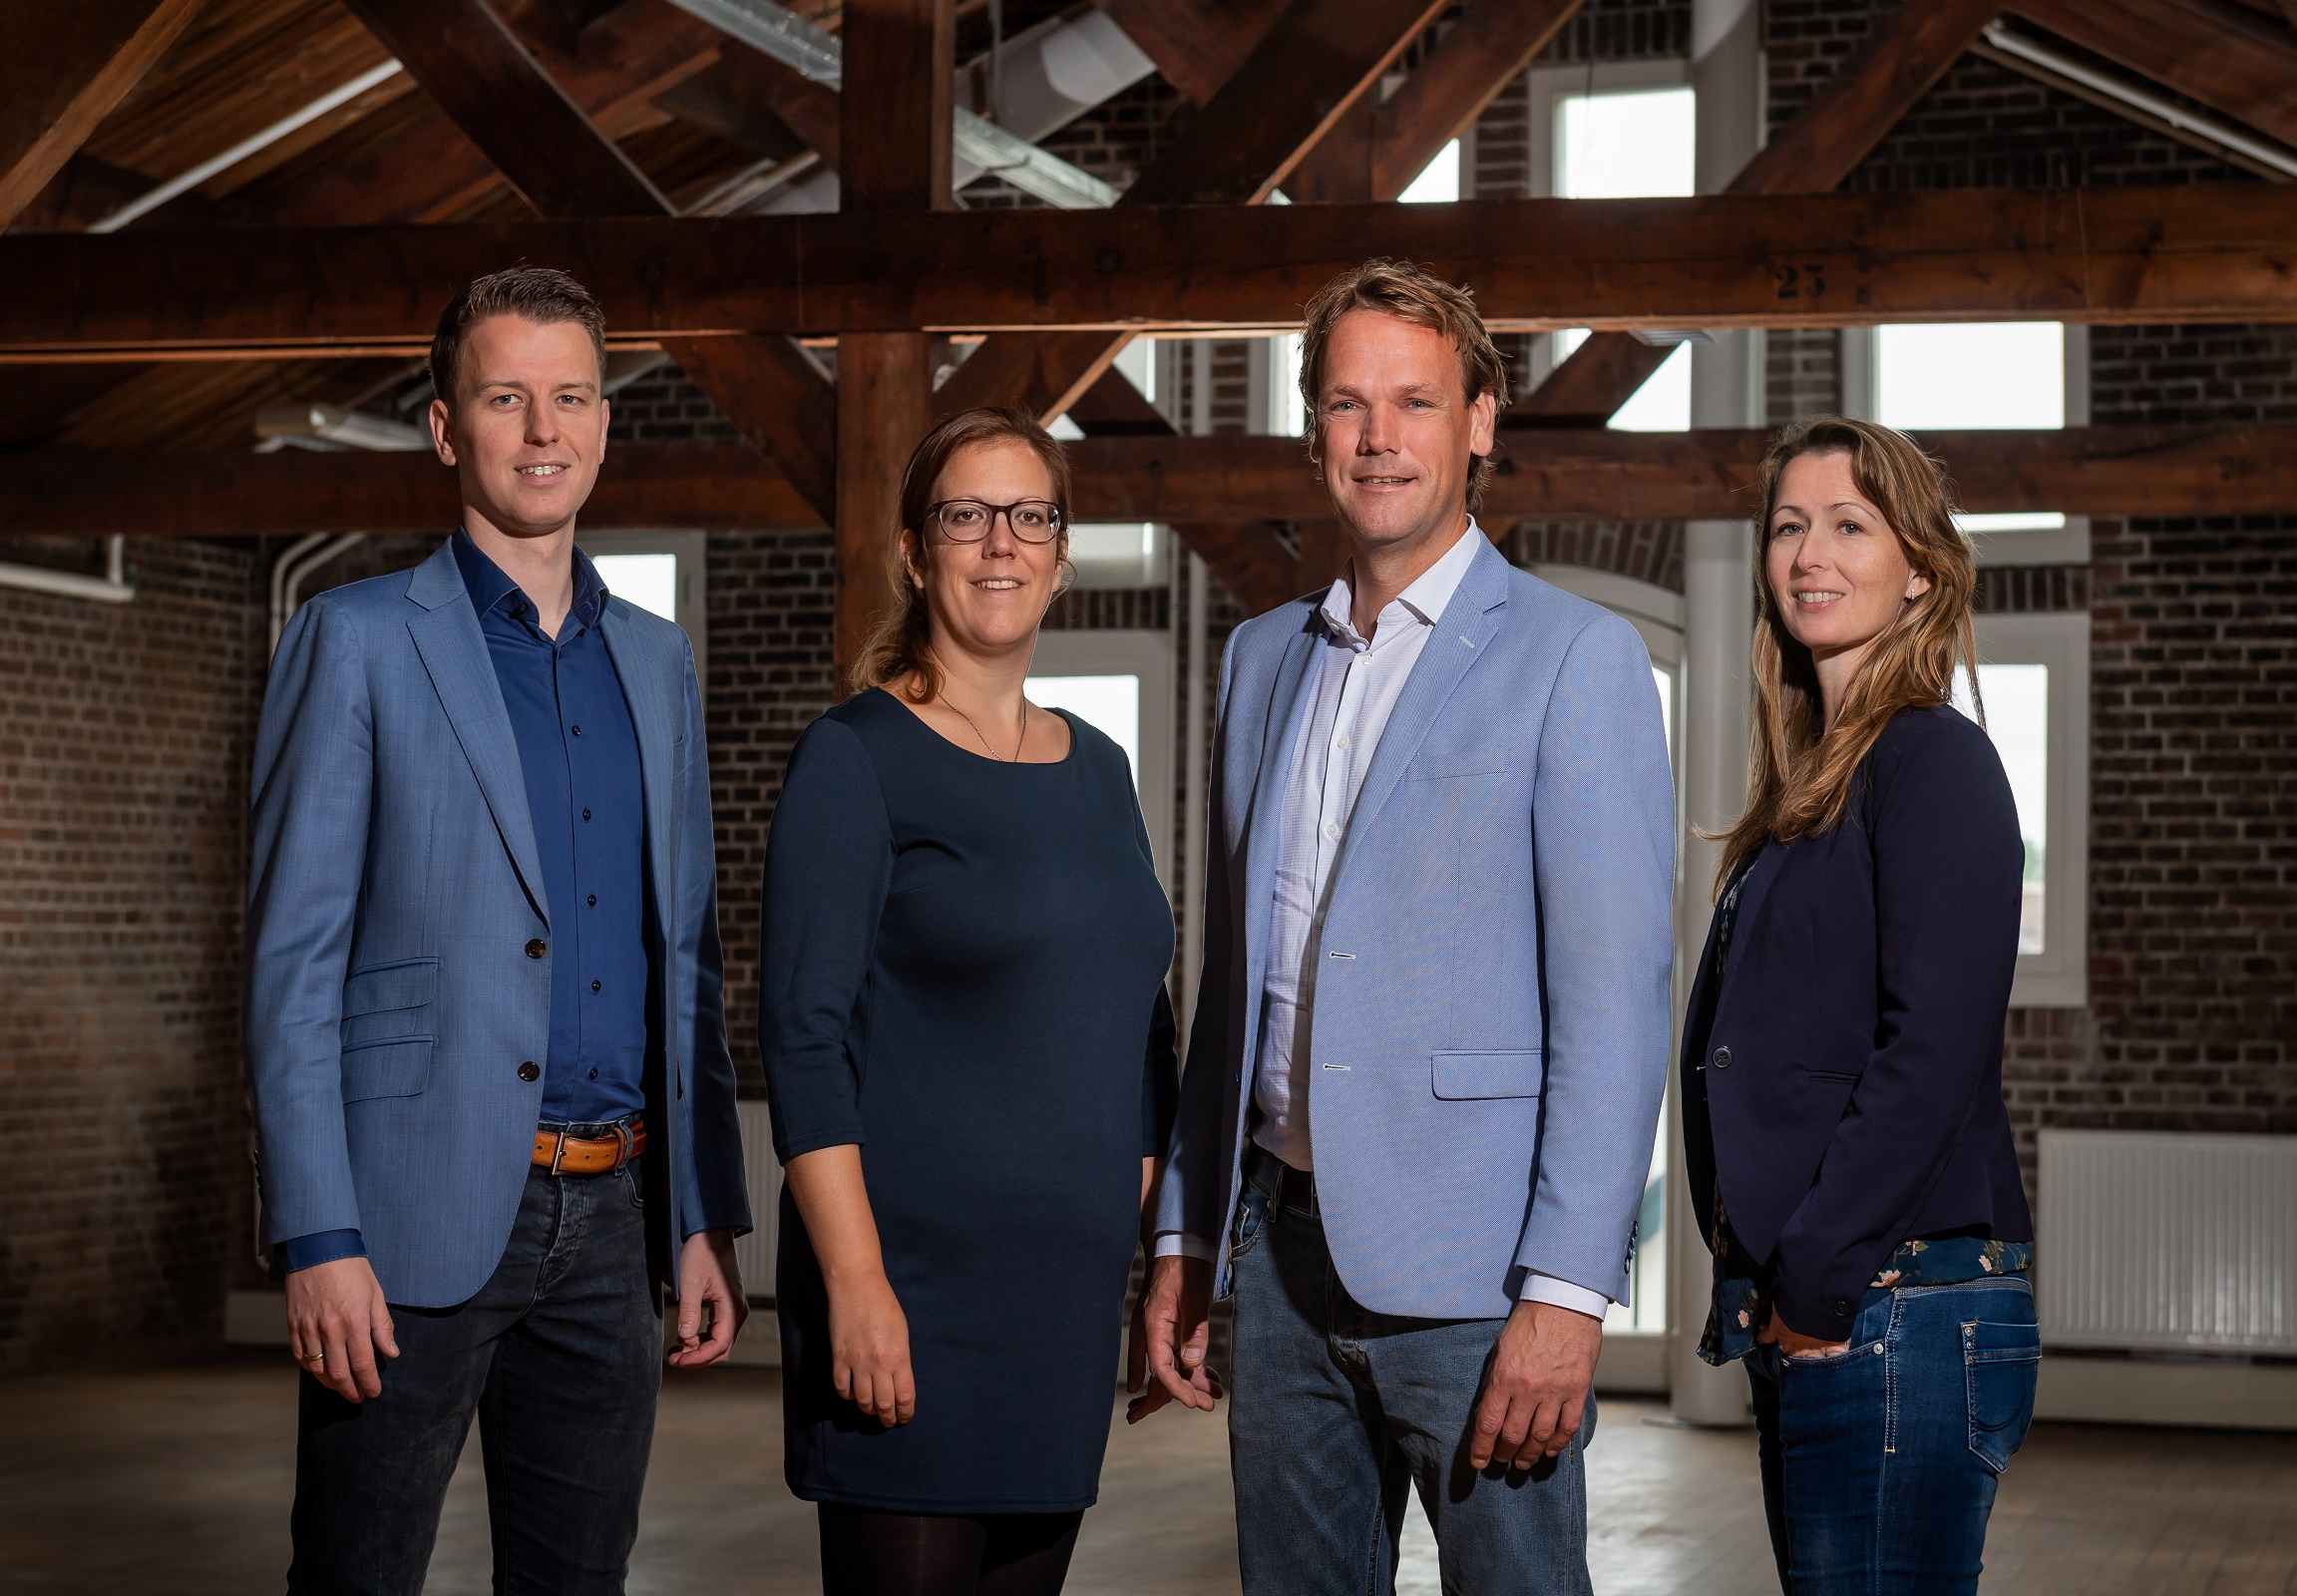 Het team van Louter Recruitment: Jeffrey, Heline, Timo en Zoraida